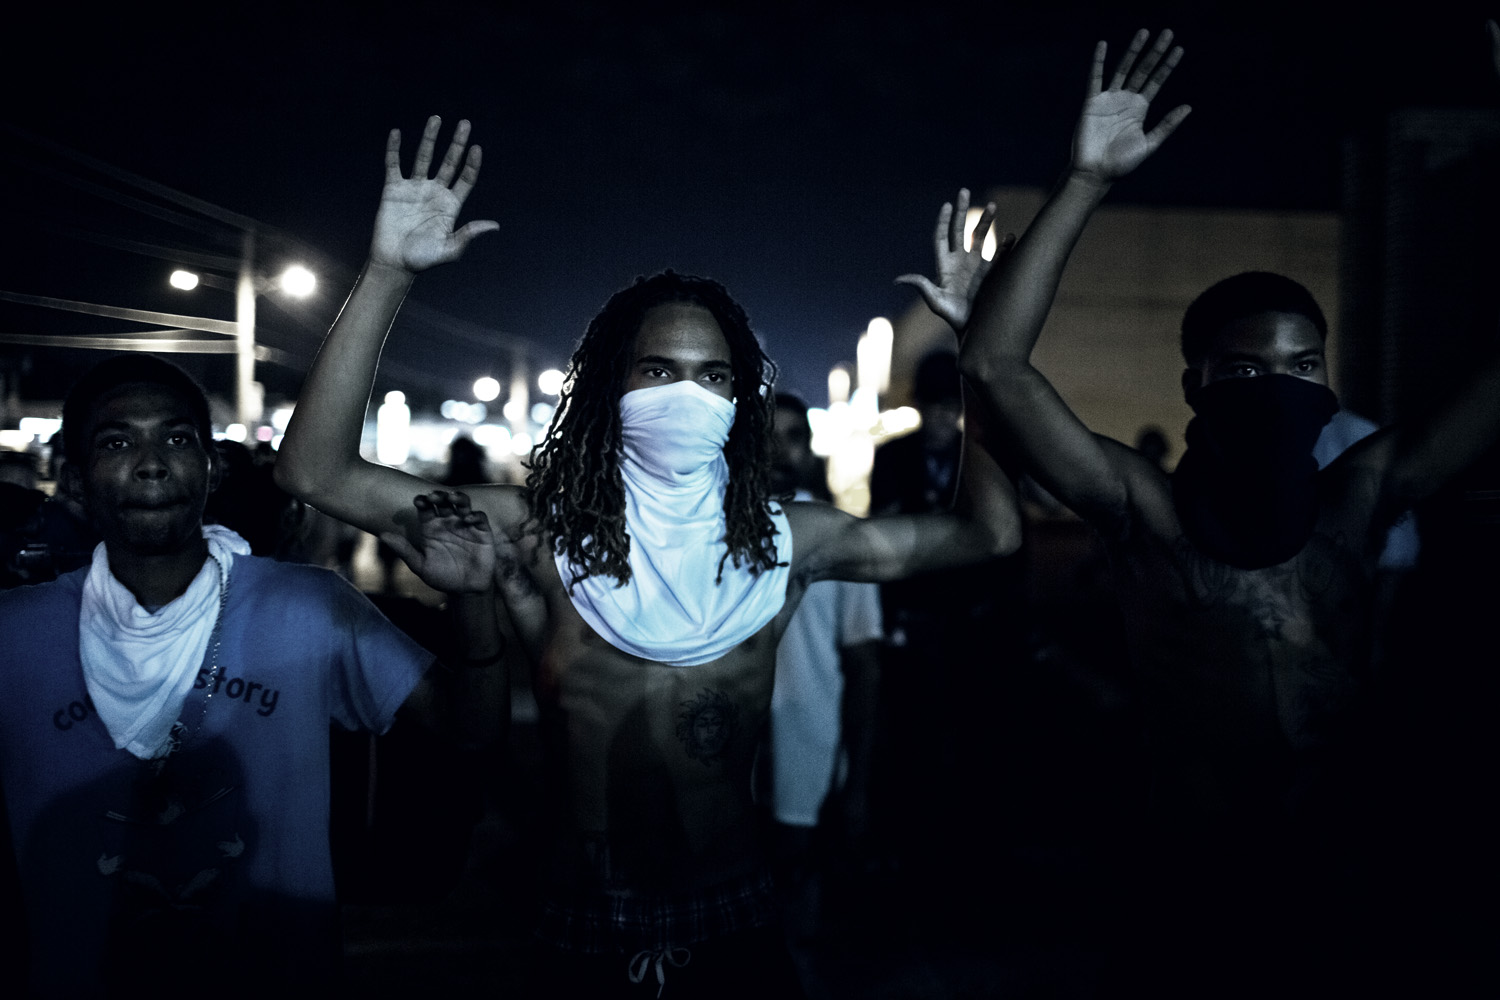 Aug. 19, 2014. Demonstraters during clashes with police that erupted folwoing a mostly peacful protest at 12:30 AM on Wednesday, Aug 20, 2014 in Furguson, MO.